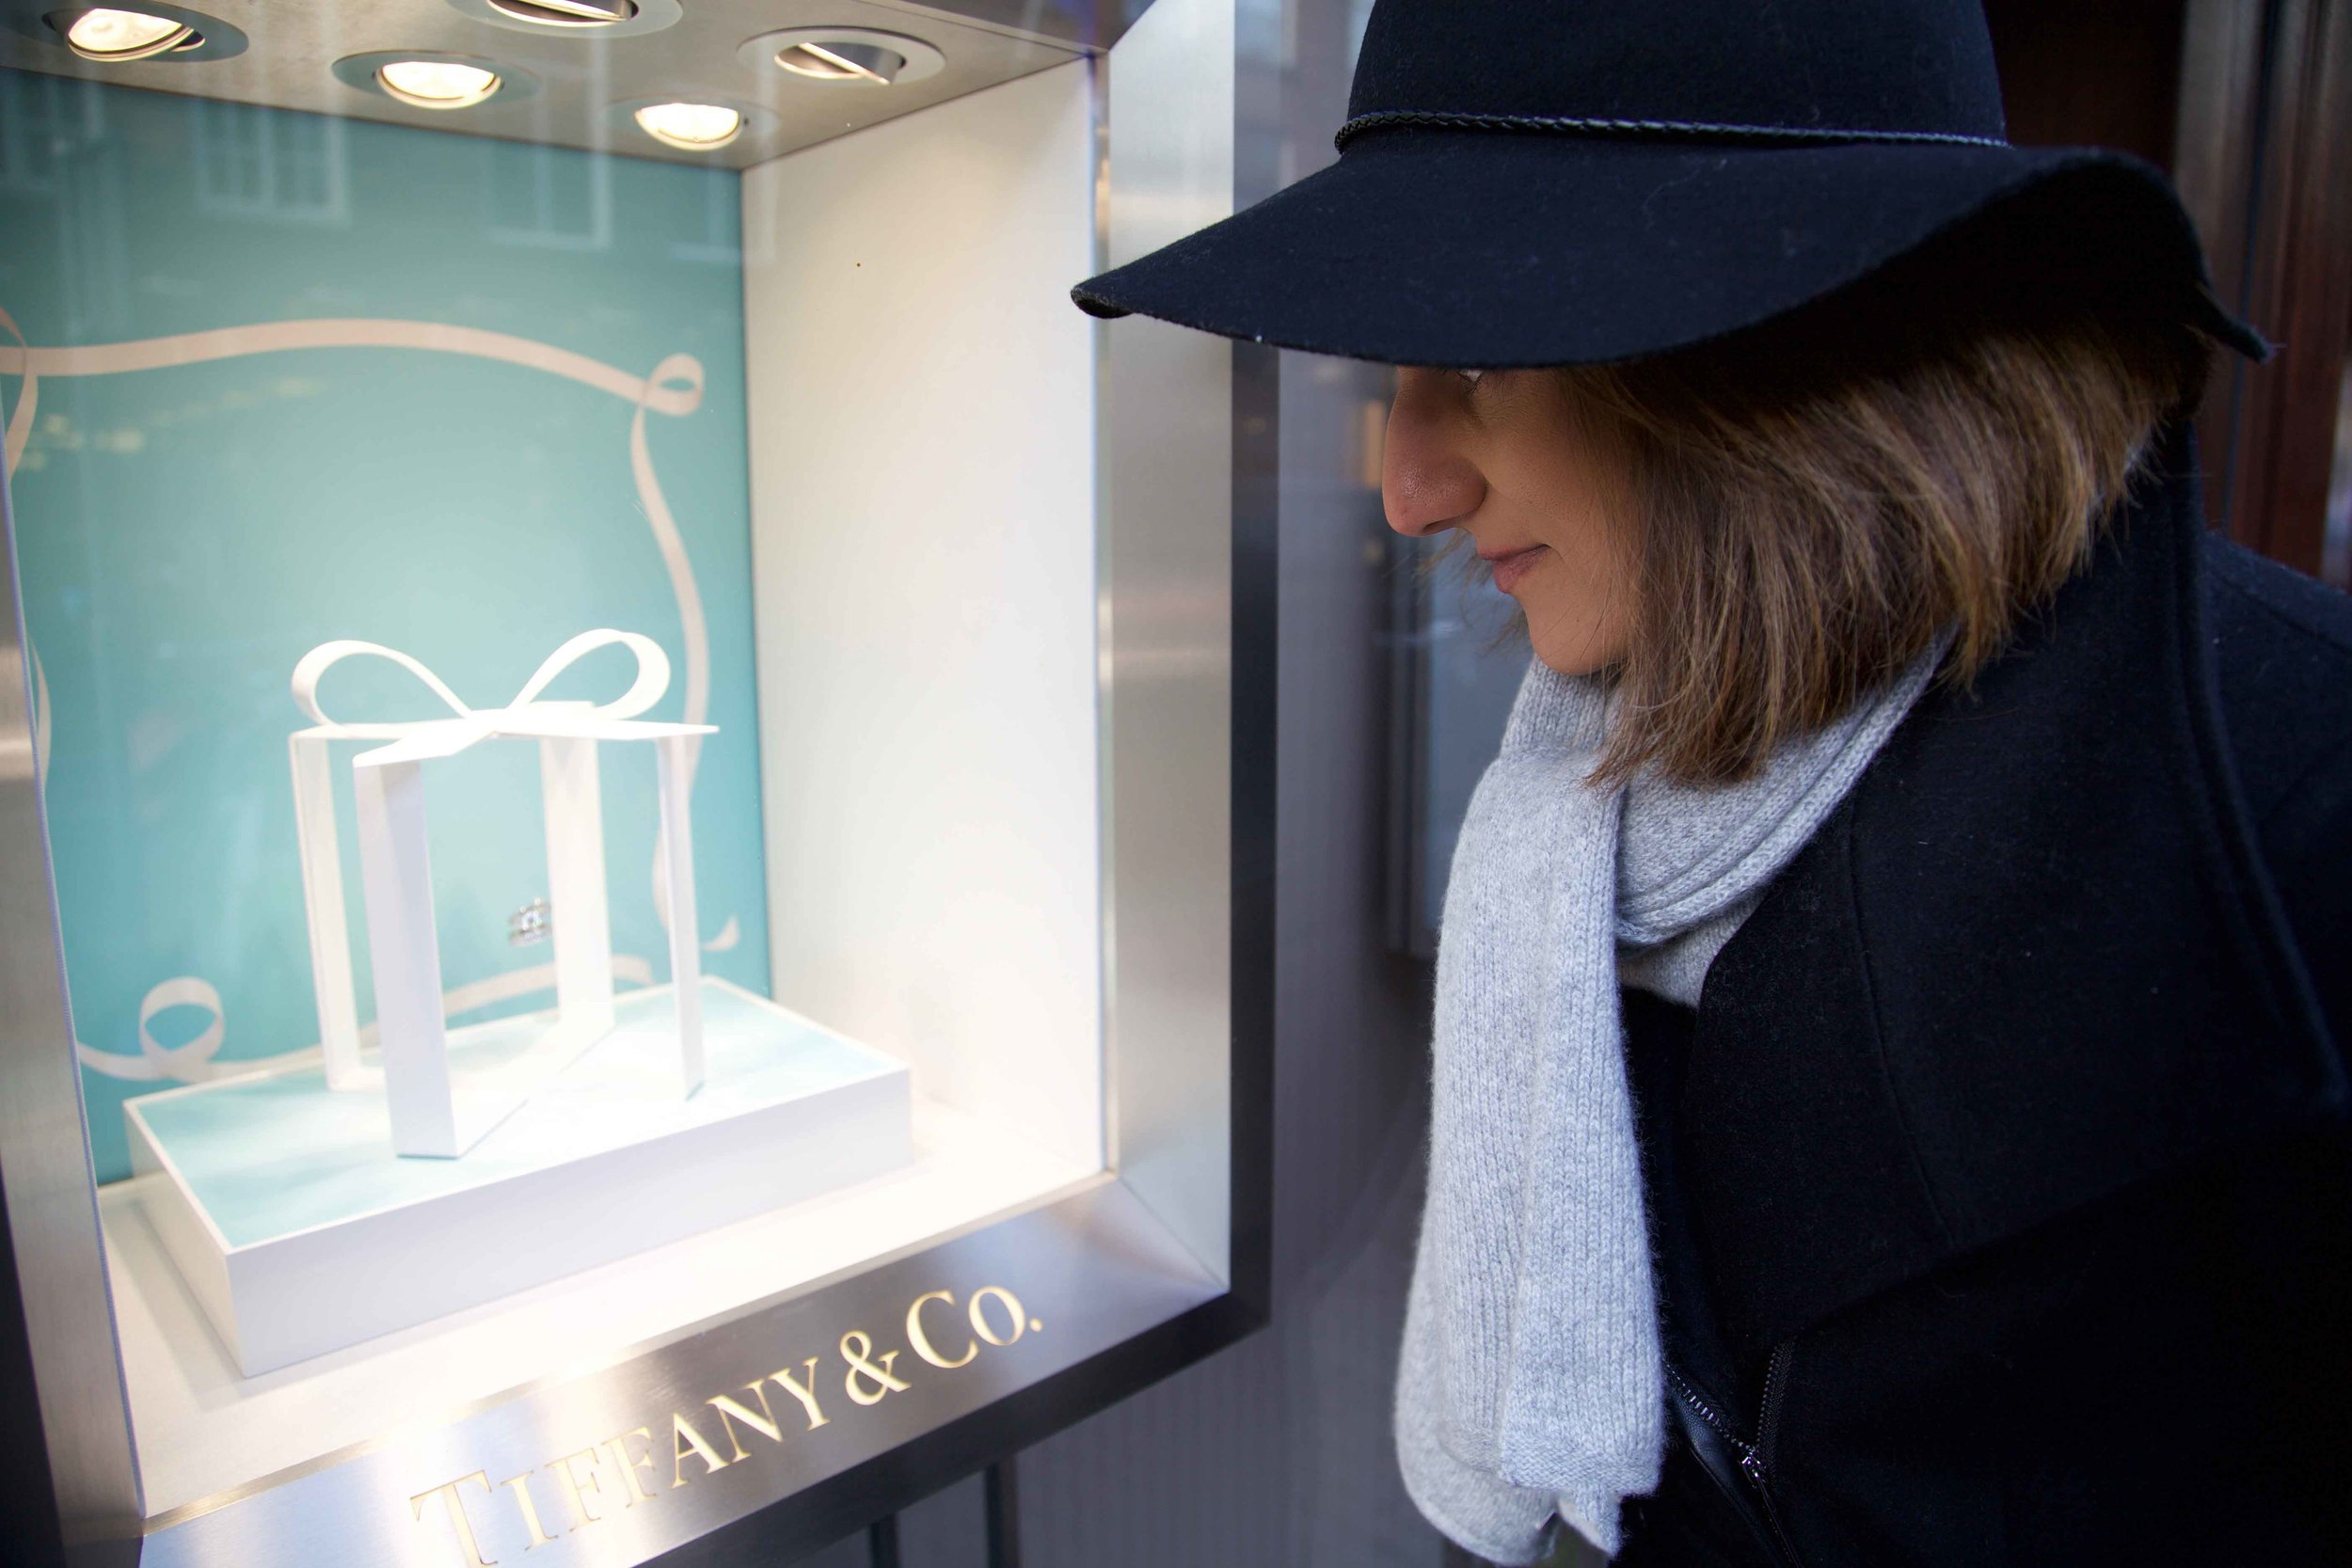 Tiffany & Co., Amsterdam. Photo: Fabio Ricci. Image©thingstodot.com